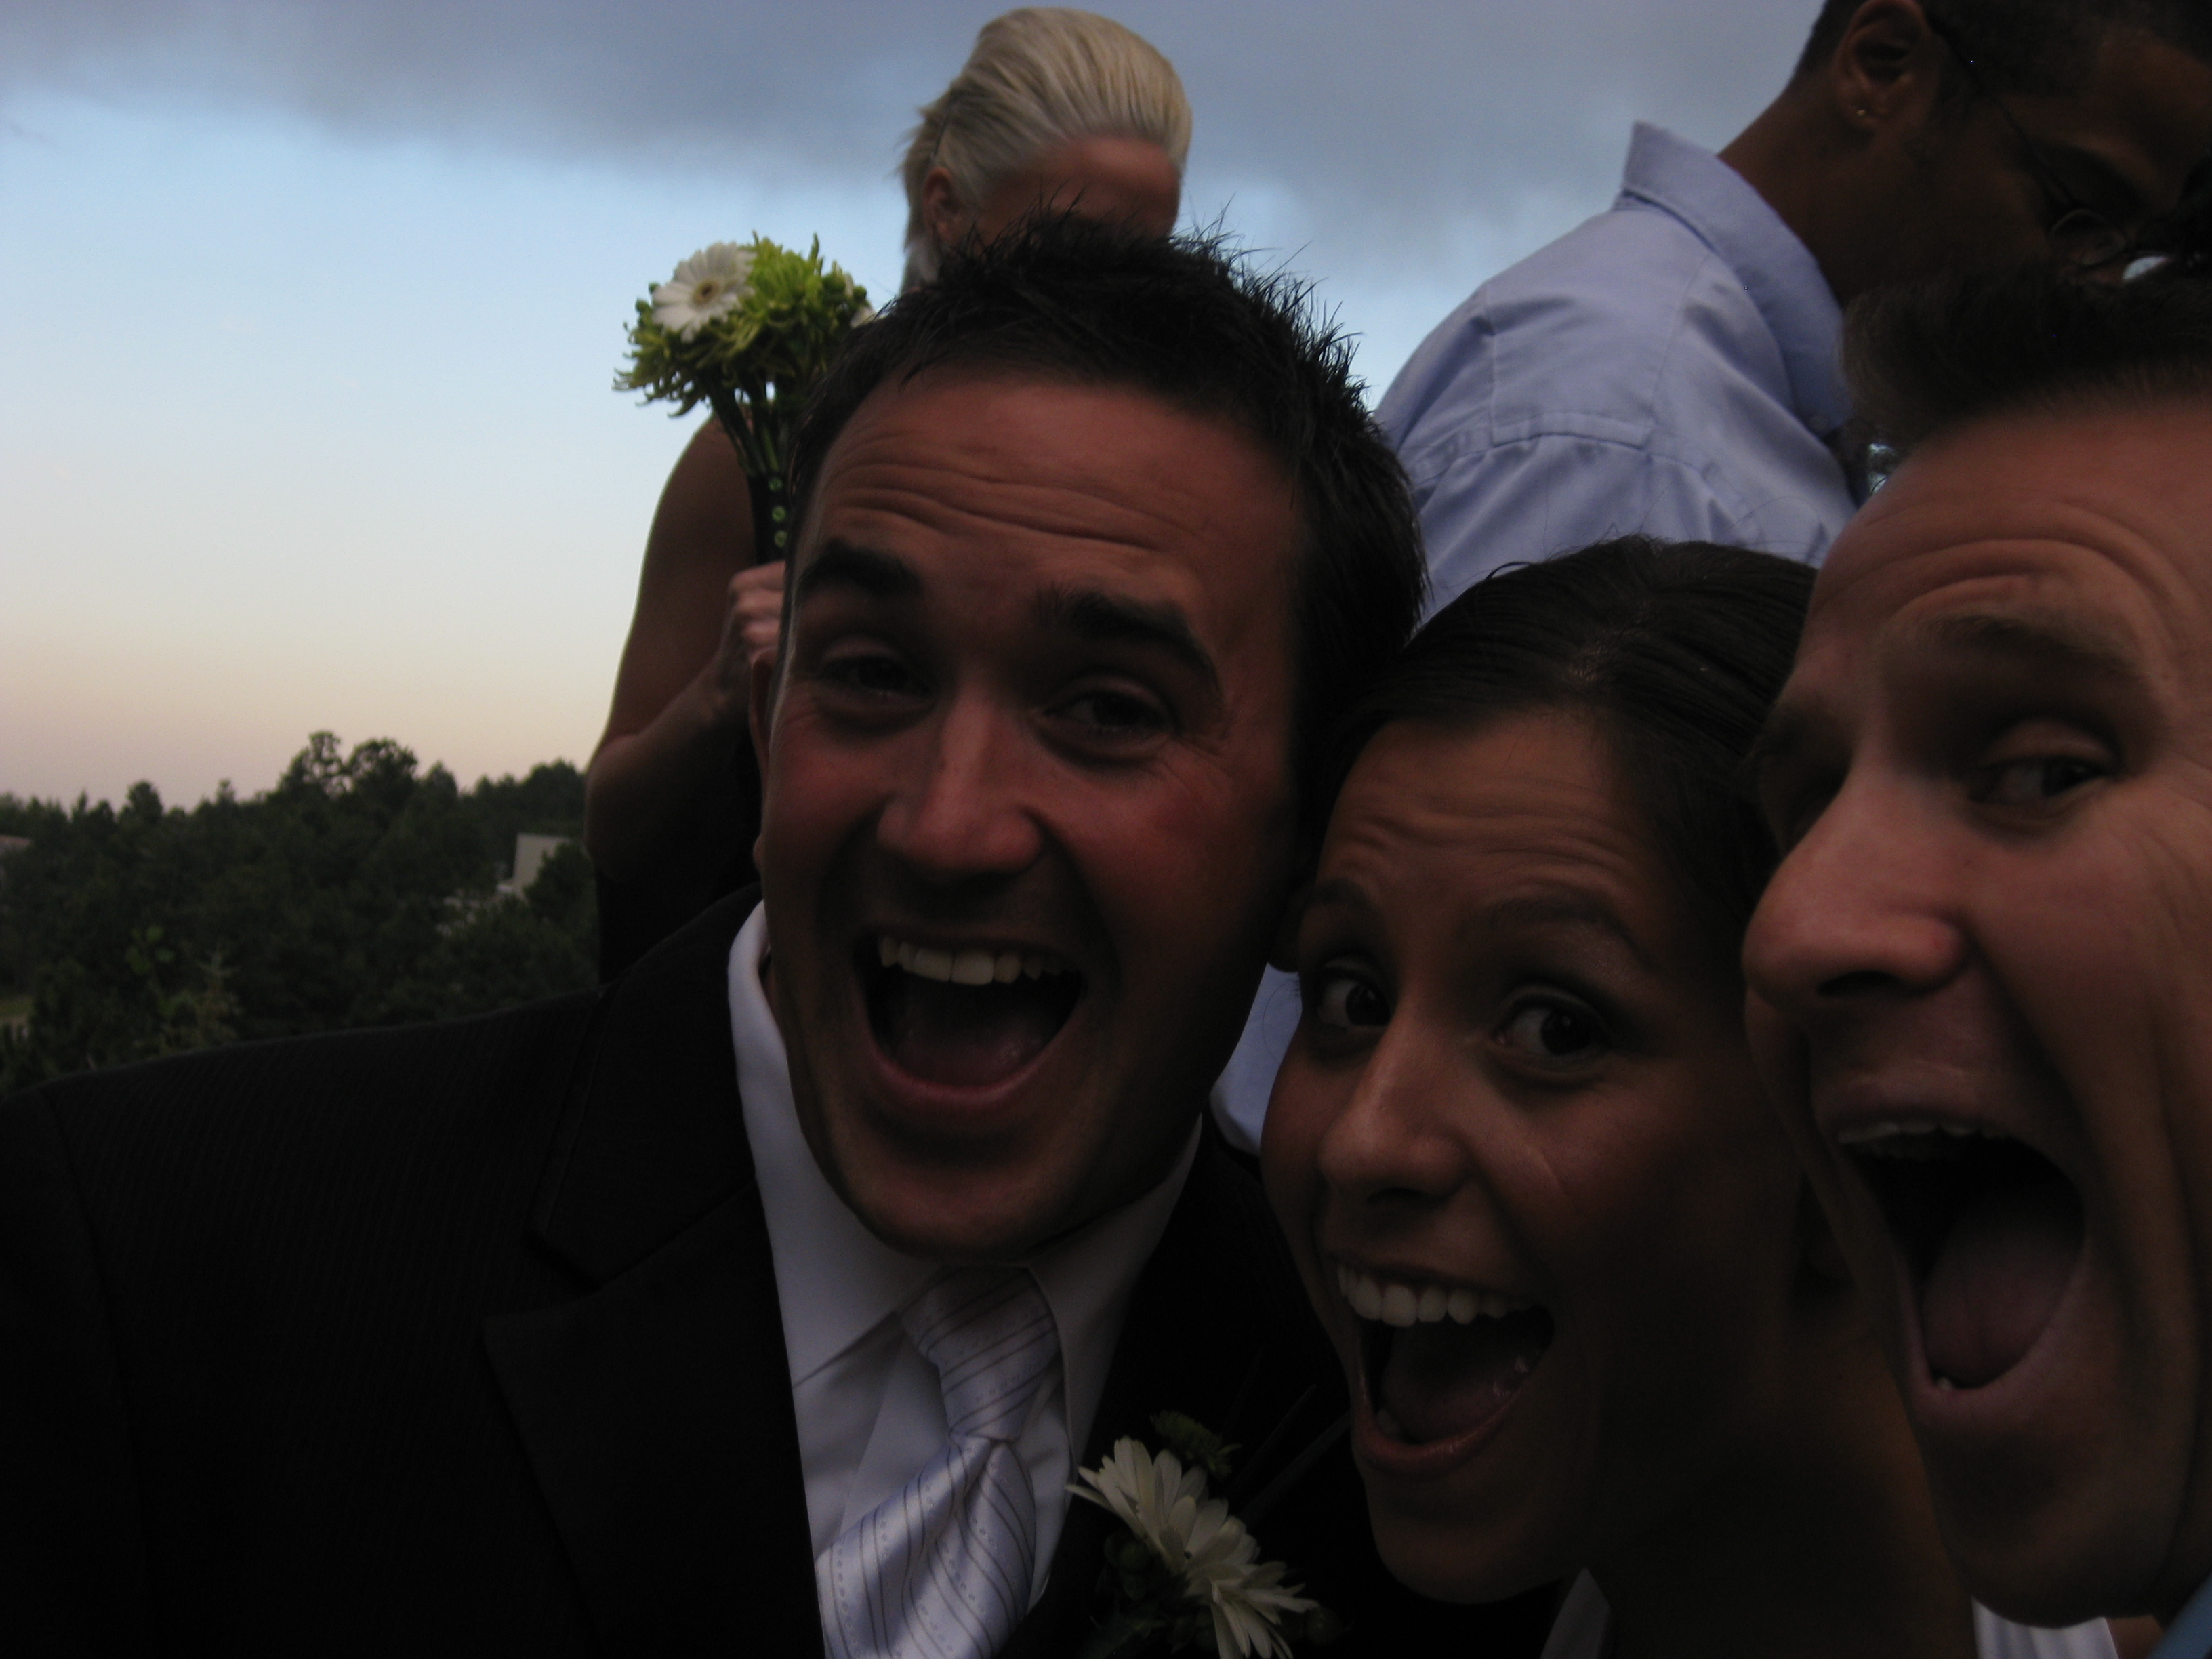 The only picture from my camera with the Bride and Groom.